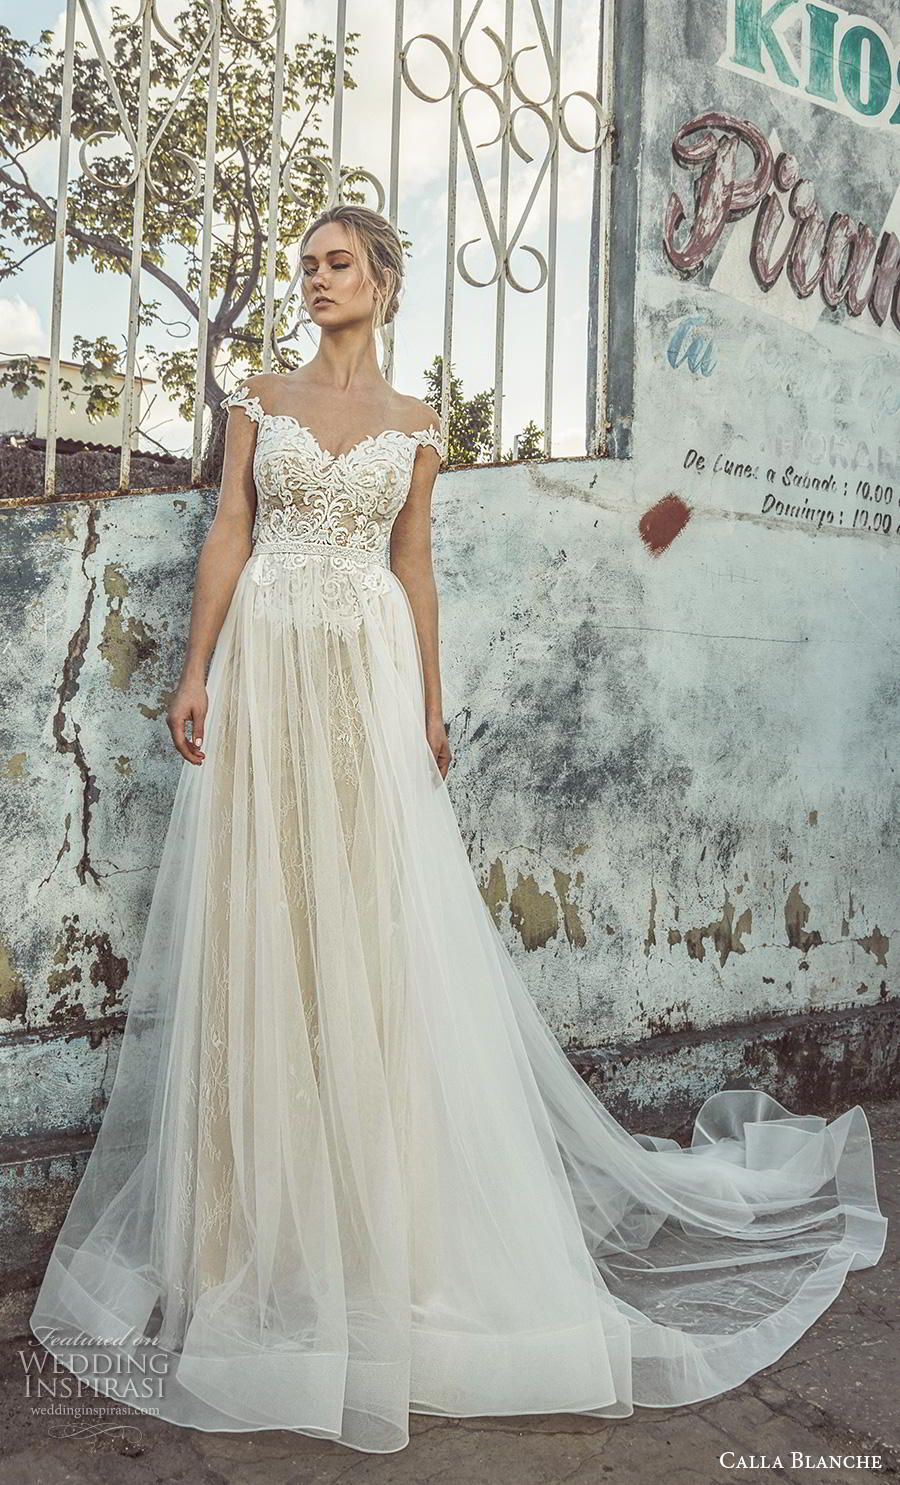 L Amour By Calla Blanche Fall 2018 Wedding Dresses Wedding Inspirasi A Line Wedding Dress Wedding Dresses Wedding Dress Accessories